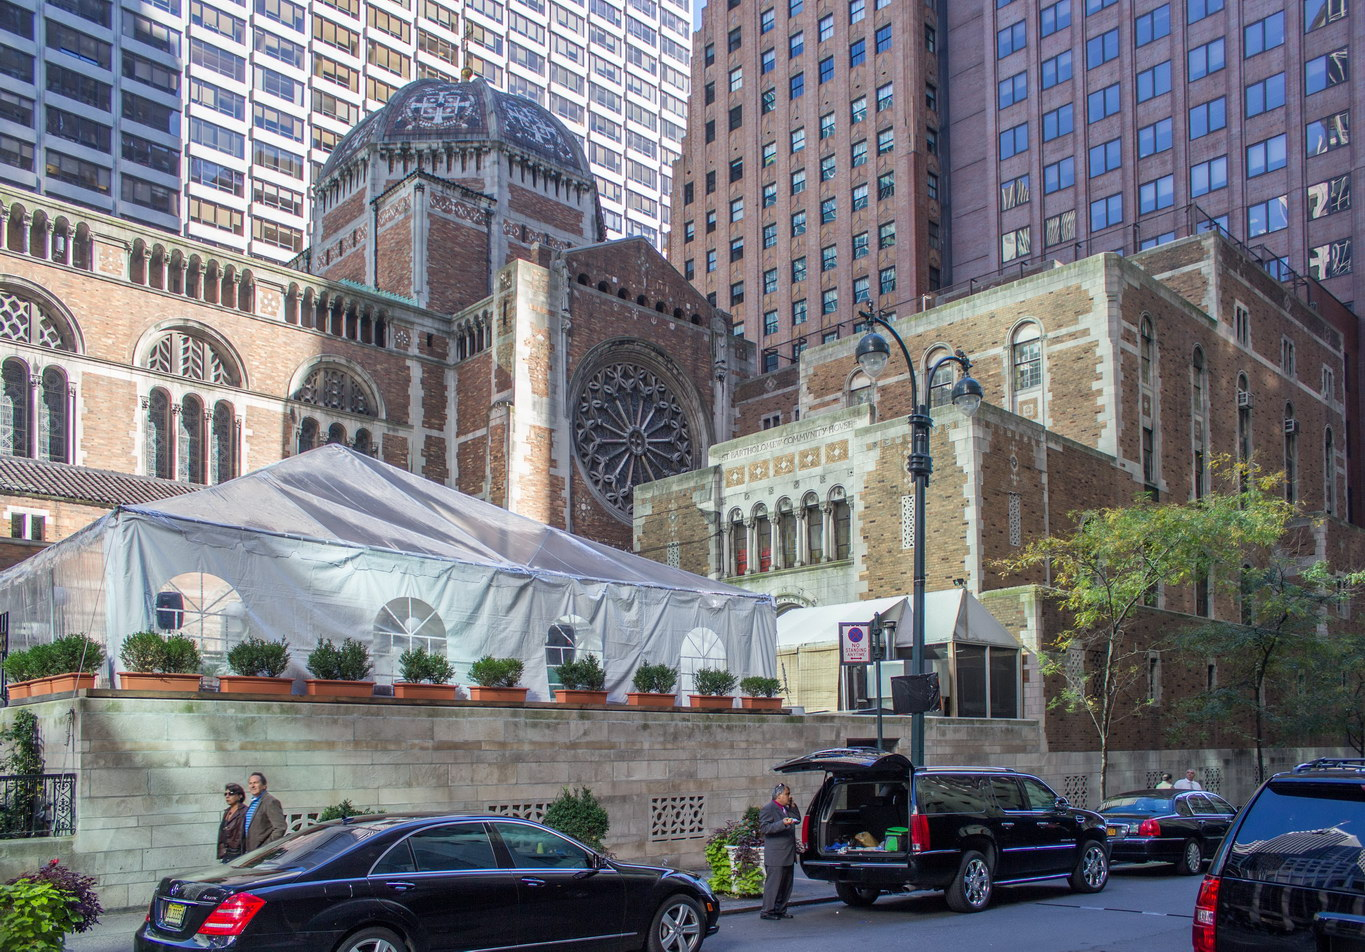 St. Bartholomew's Church - Park Avenue between E50th and E51st Streets. Community House is the building at right.